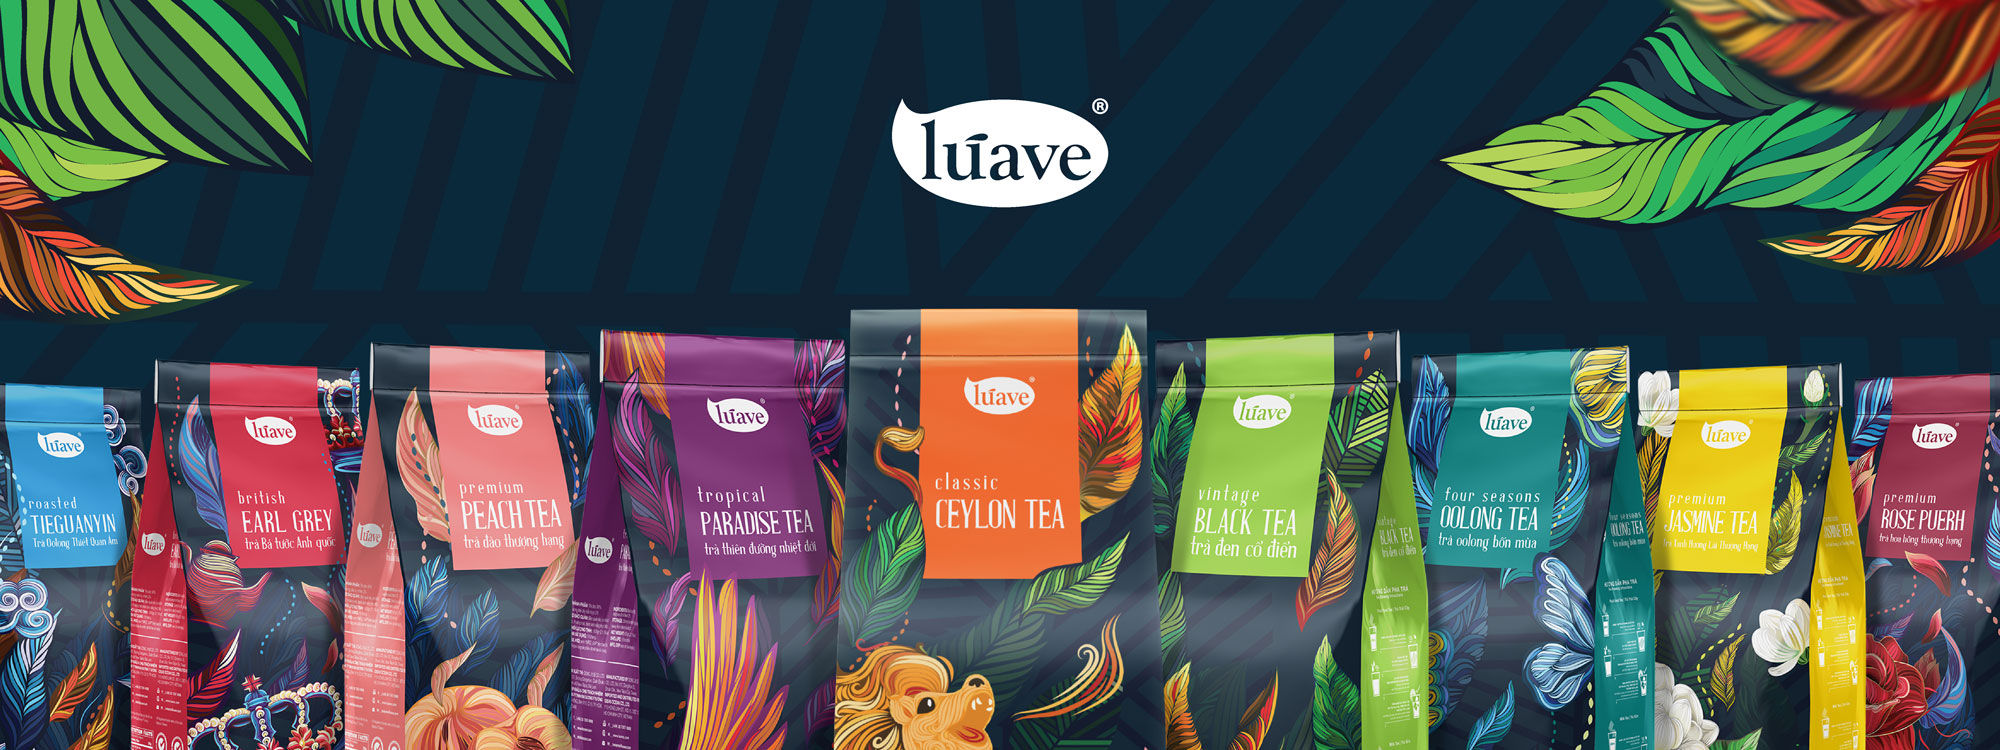 Luave - Comma - Packaging